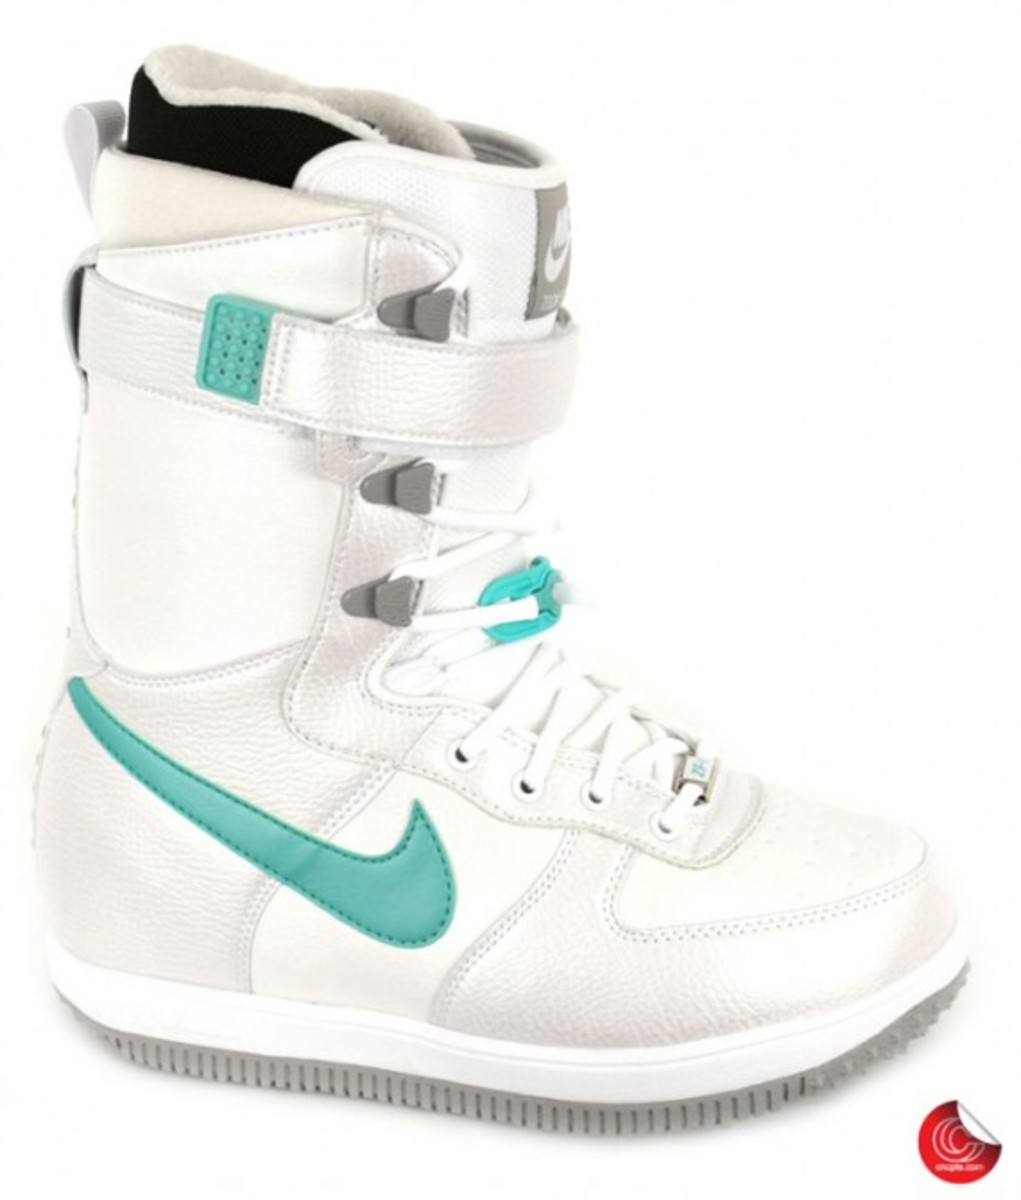 nike_snowboarding_boots_3